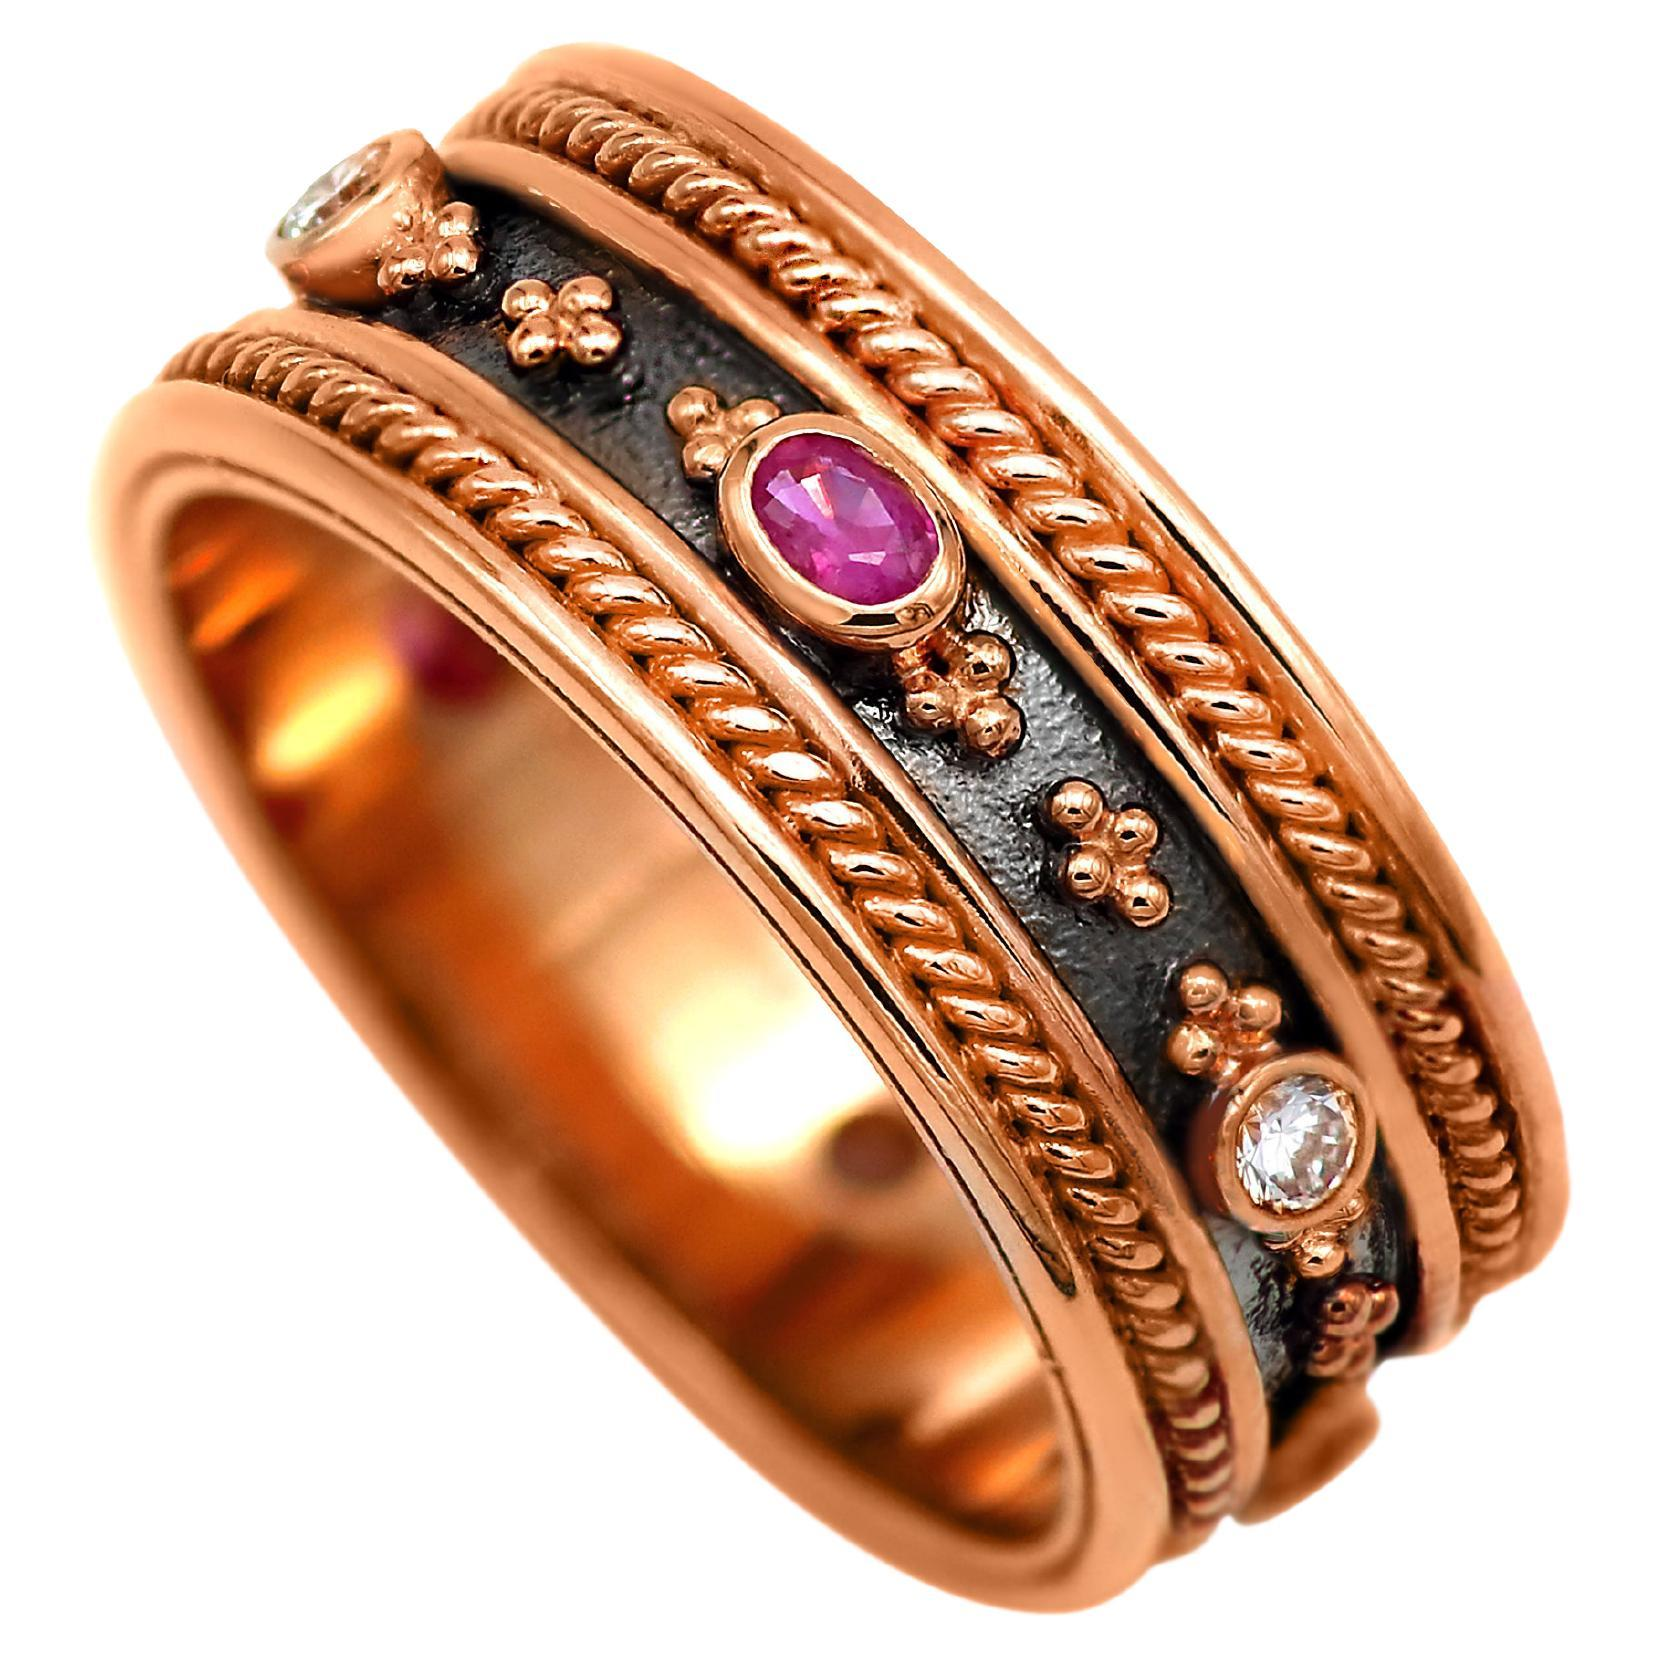 Dimos 18k Rose Gold Byzantine Inspired Band Ring with Rubies & Diamonds